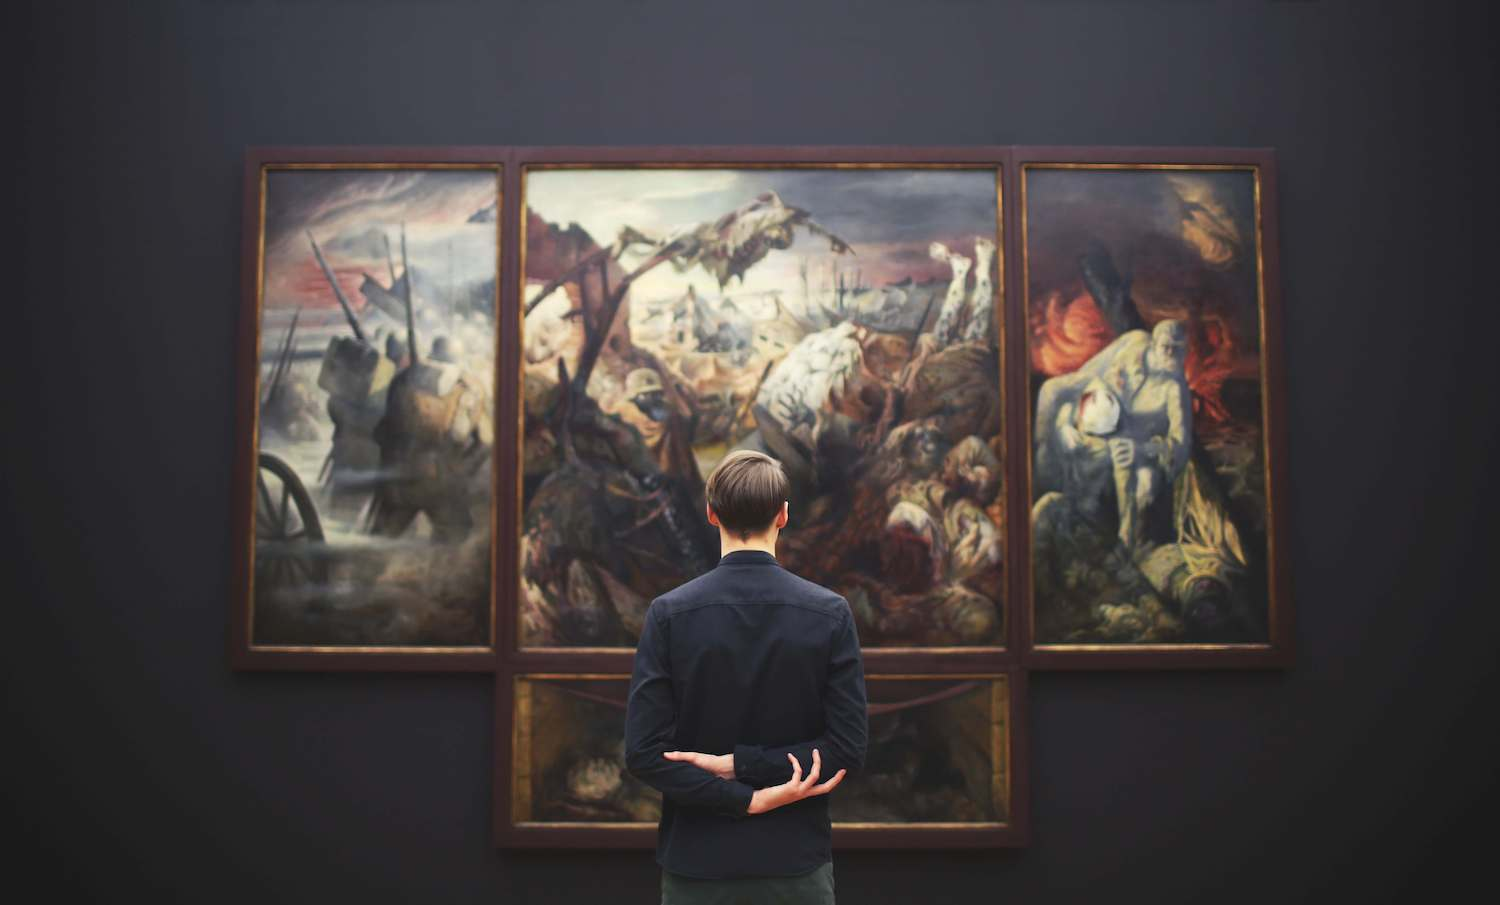 A man contemplating a picture in a museum.